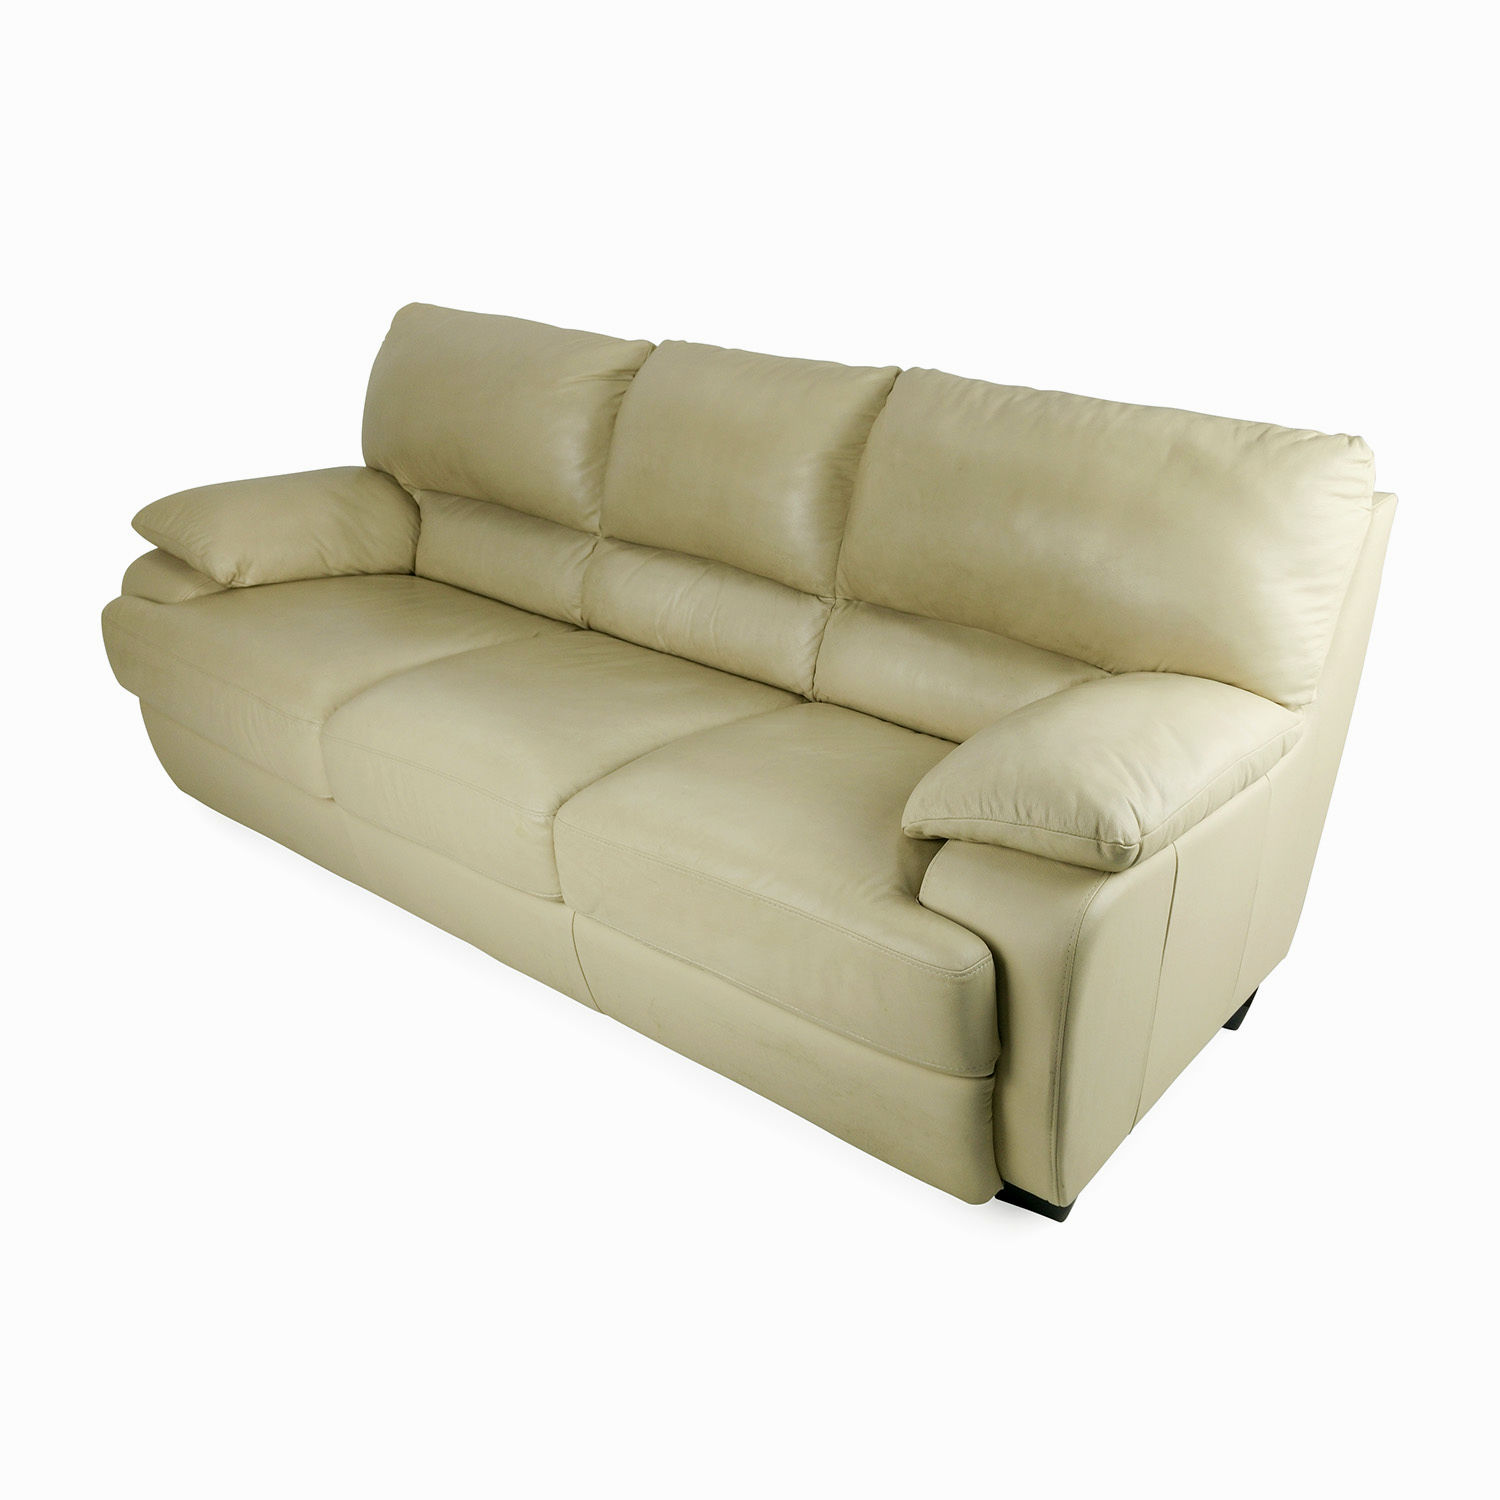 fascinating mathis brothers sofas décor-Fancy Mathis Brothers sofas Wallpaper